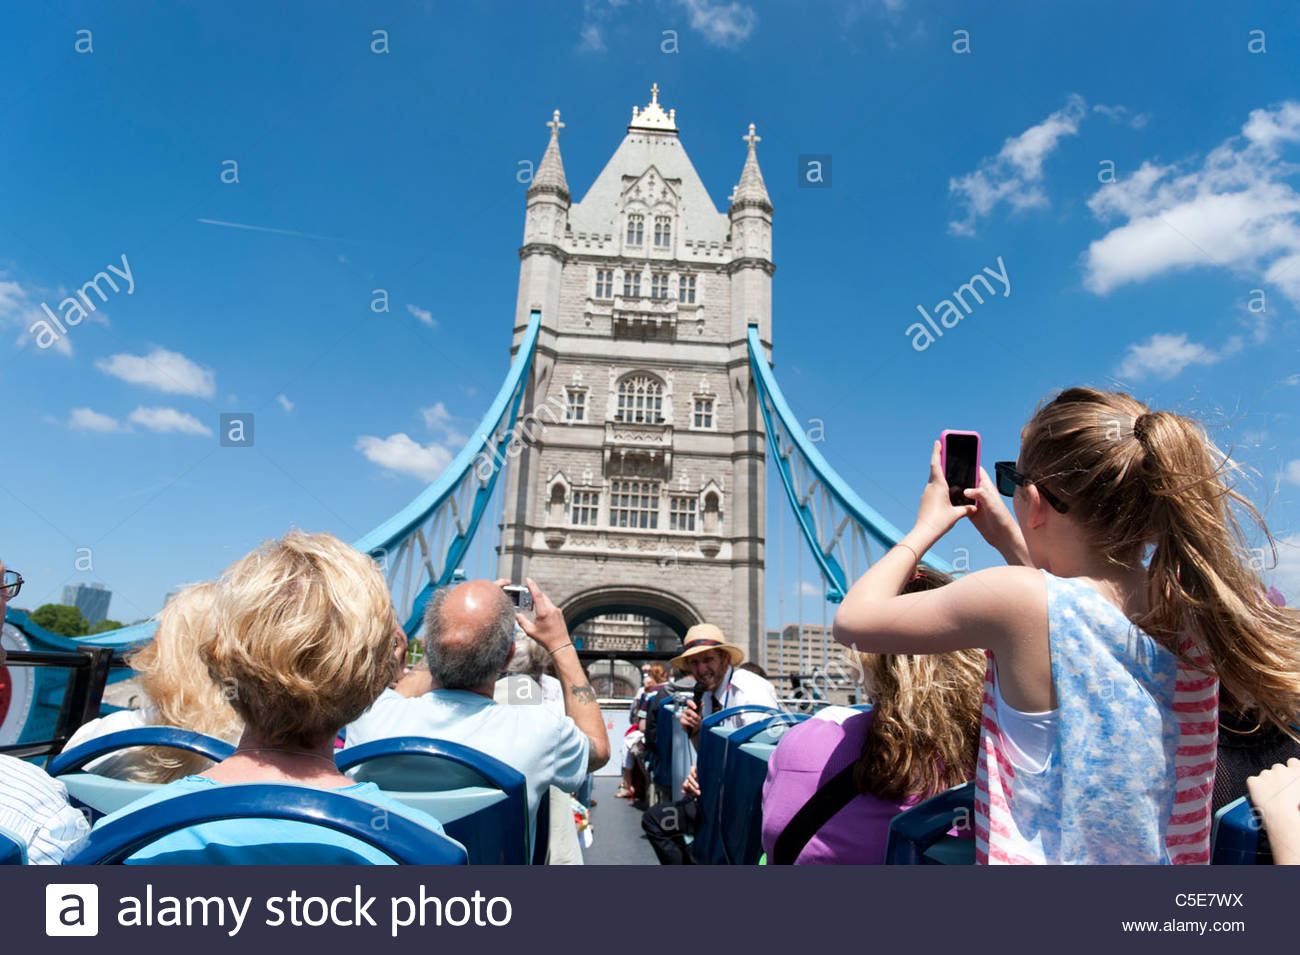 Tourists on open top double decker Original London tour bus crossing Tower Bridge, London, UK - Stock Image